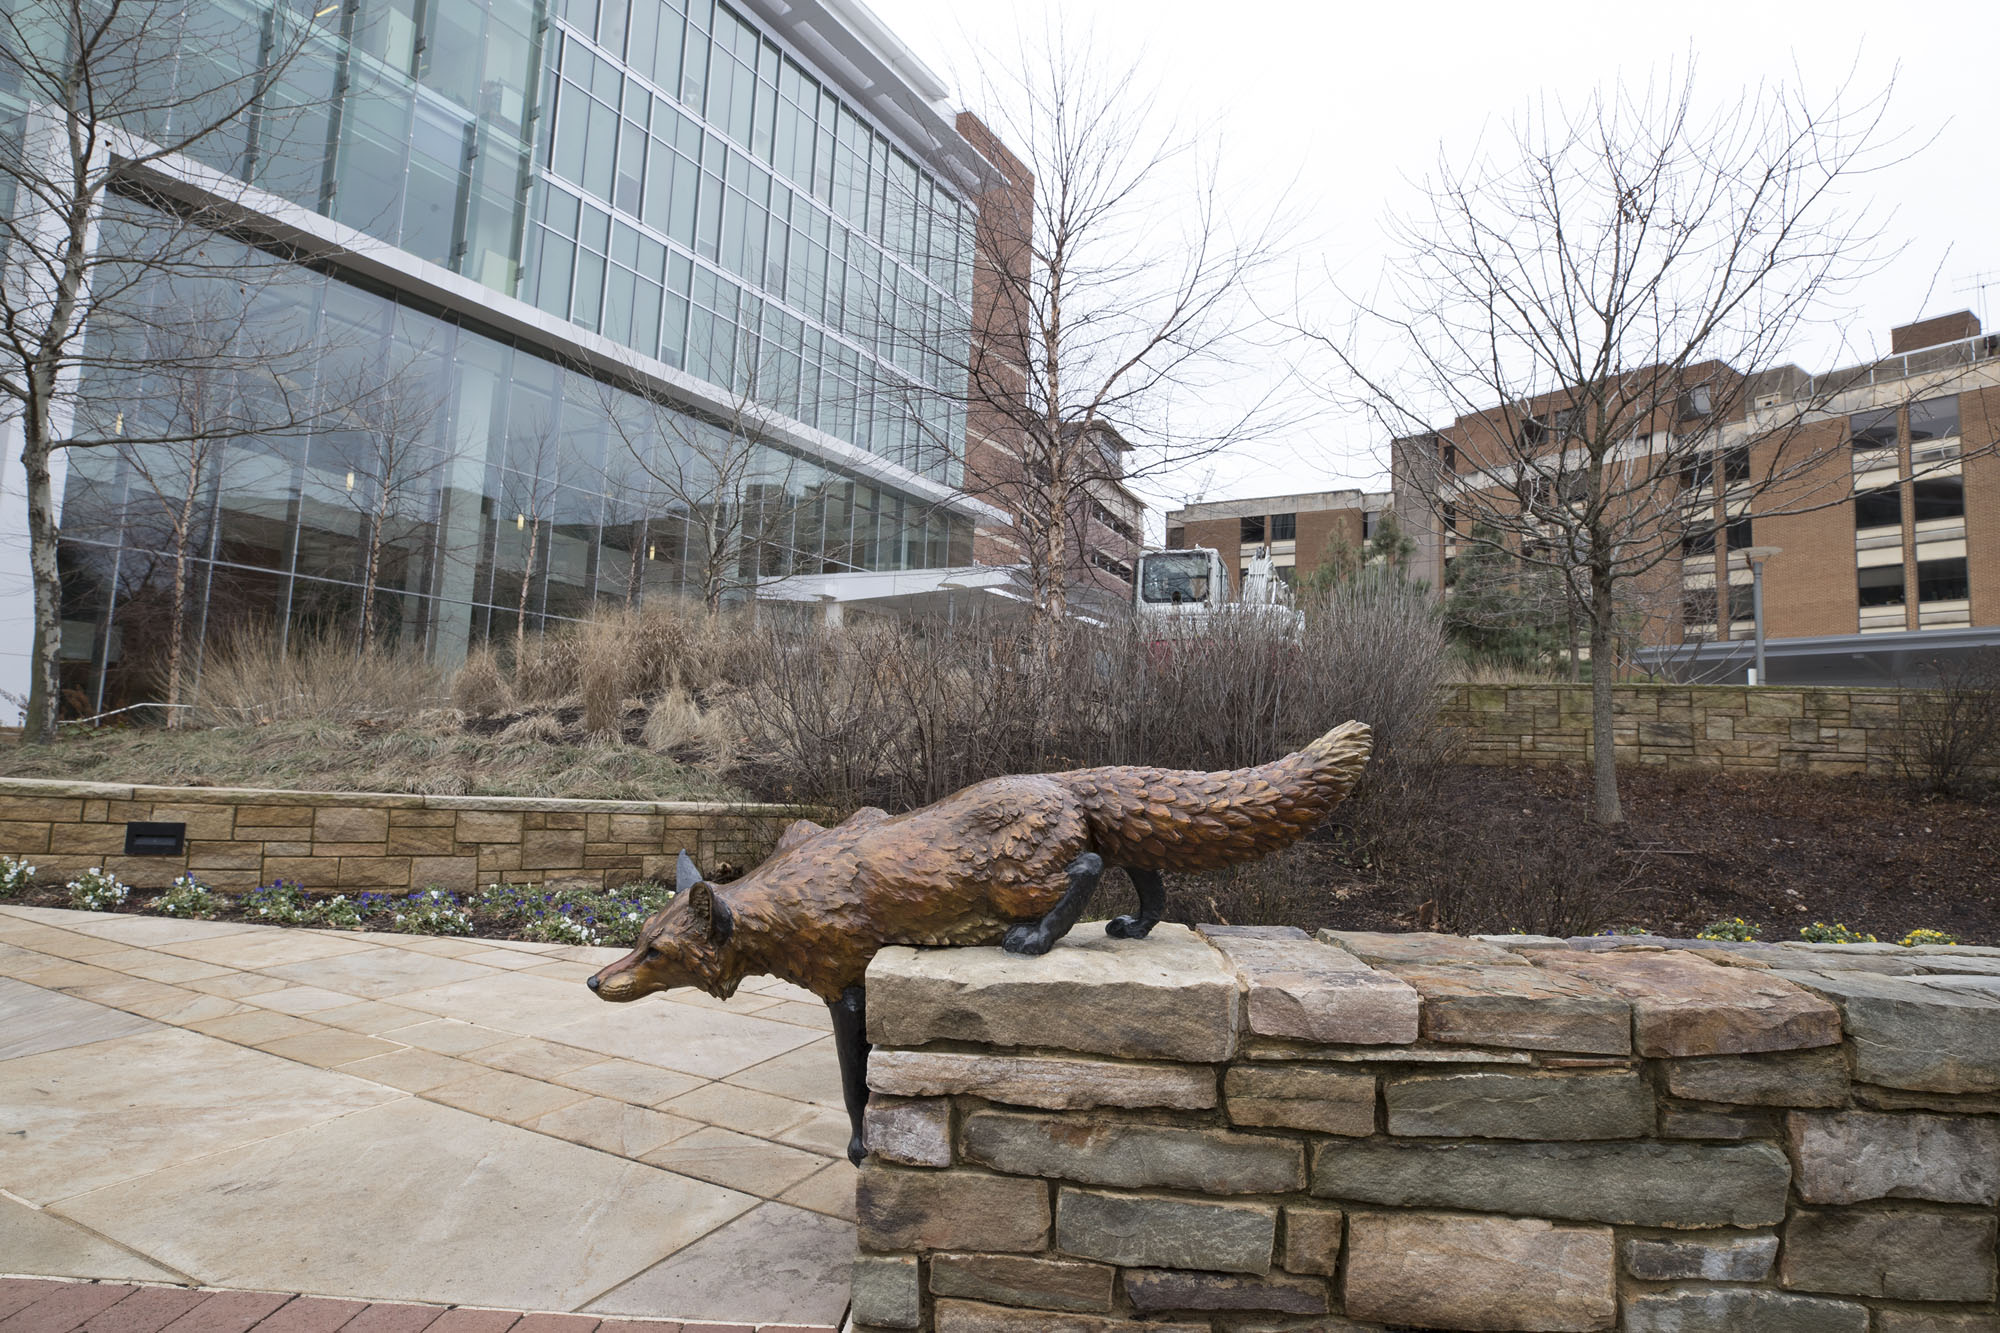 David Turner's fox sculpture was the second added to the plaza.